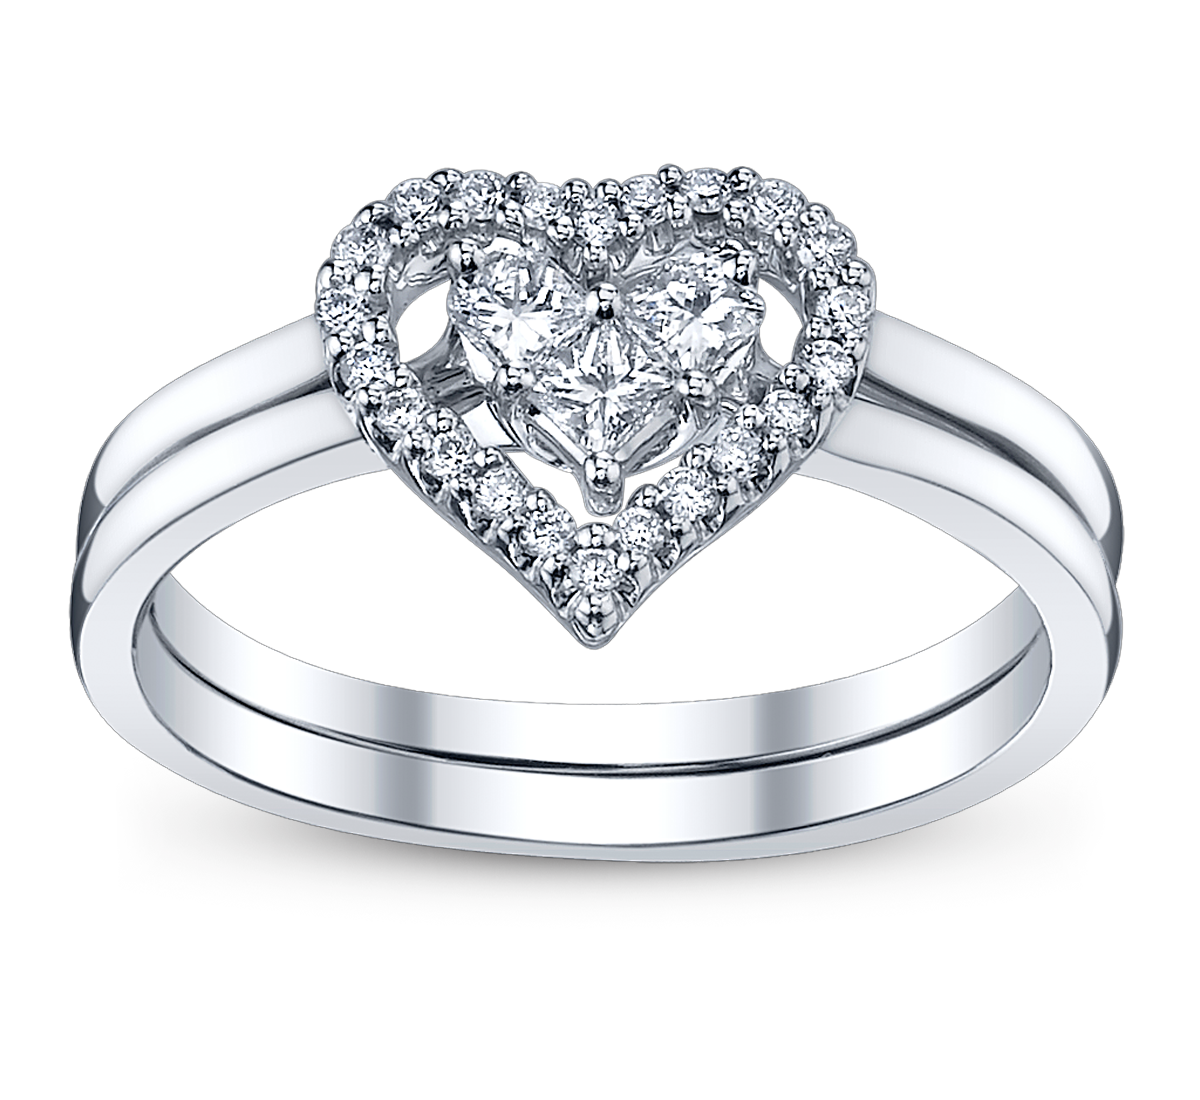 4 Perfect Heart & Bow Diamond Engagement Rings for the Holidays ...